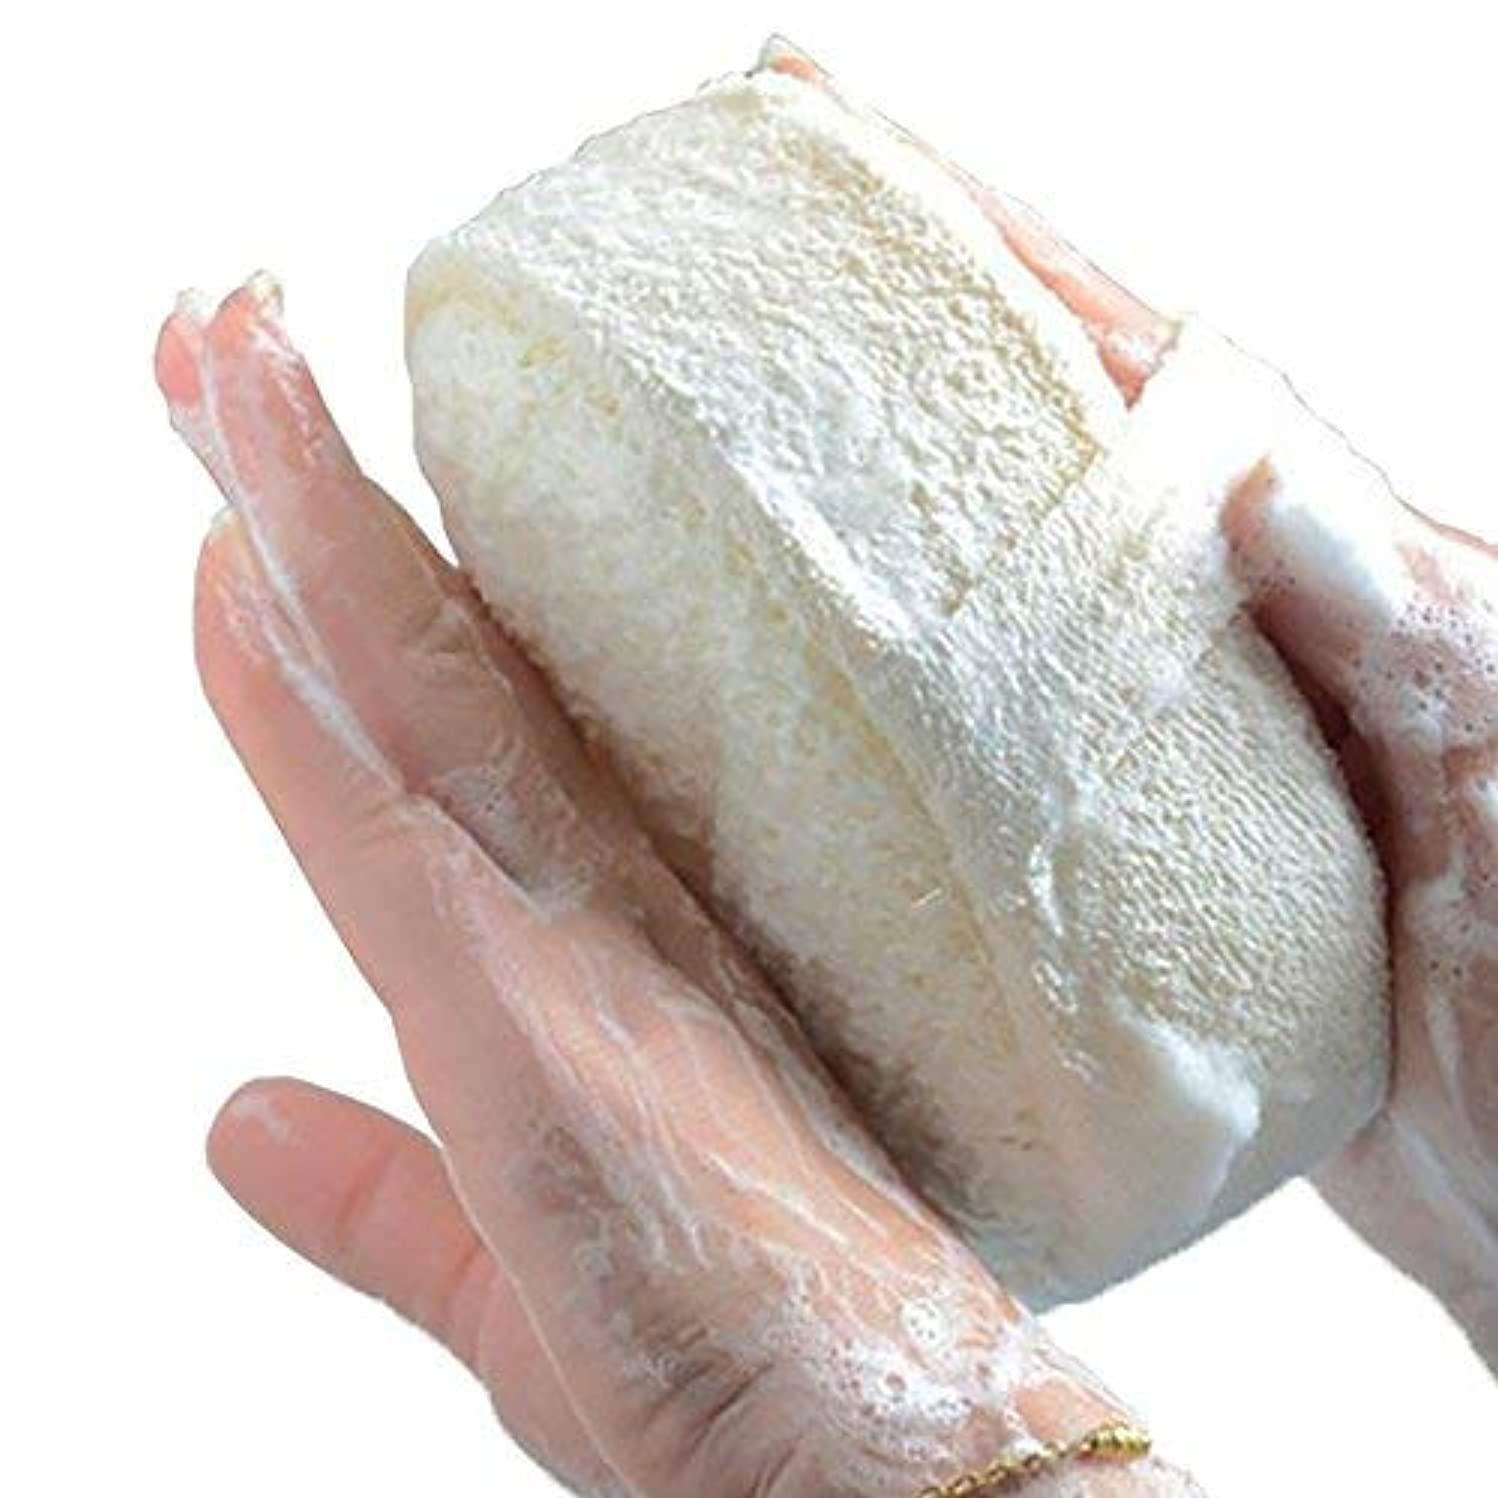 Bath Body Sponge - Body Bath Sponge - Soft Bath Brush Massage Shower Loofah Sponge Back Scrubber Natural Bath Scrubber Glove Sponge Bathroom Tools - Bath Scrubber Sponge